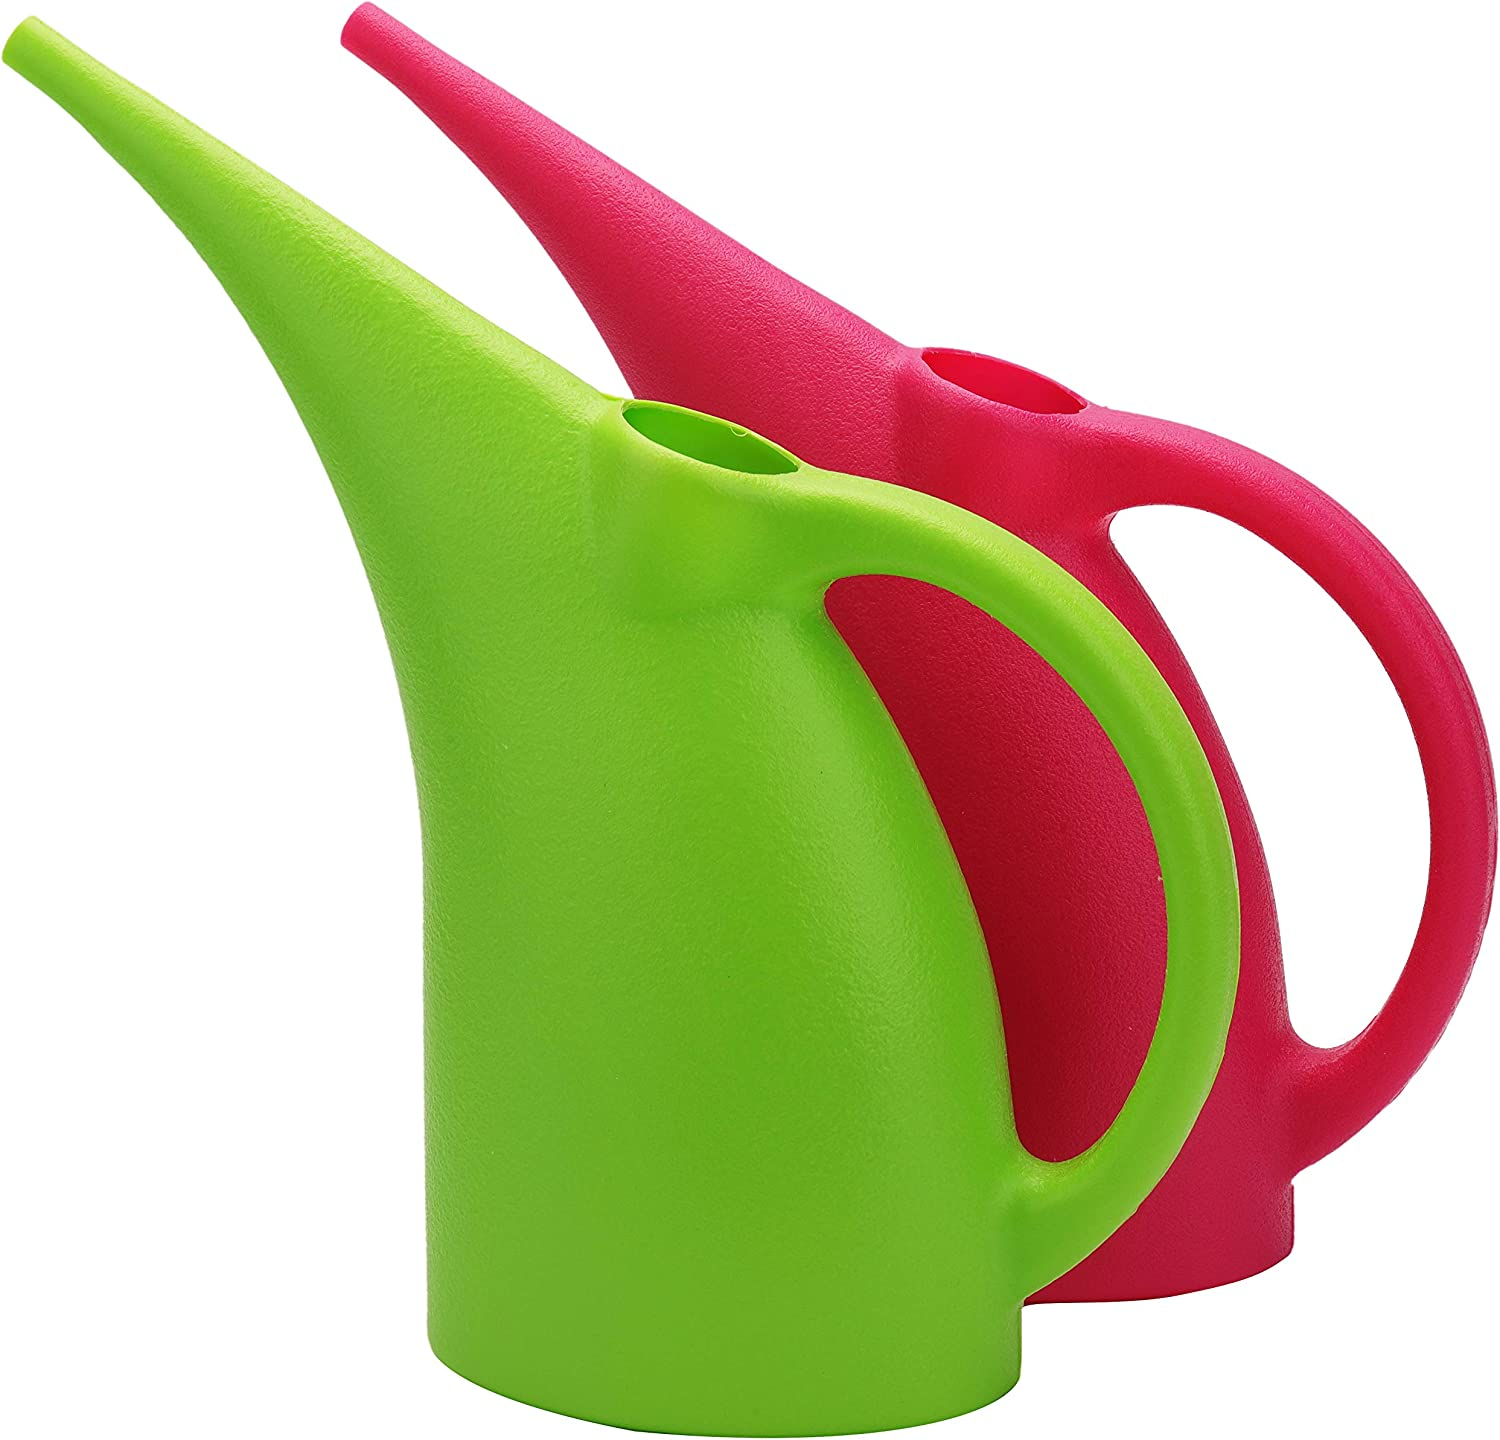 Fasmov 2 Pack 1/2-Gallon Plastic Watering Can Watering Pot (Green & Red)